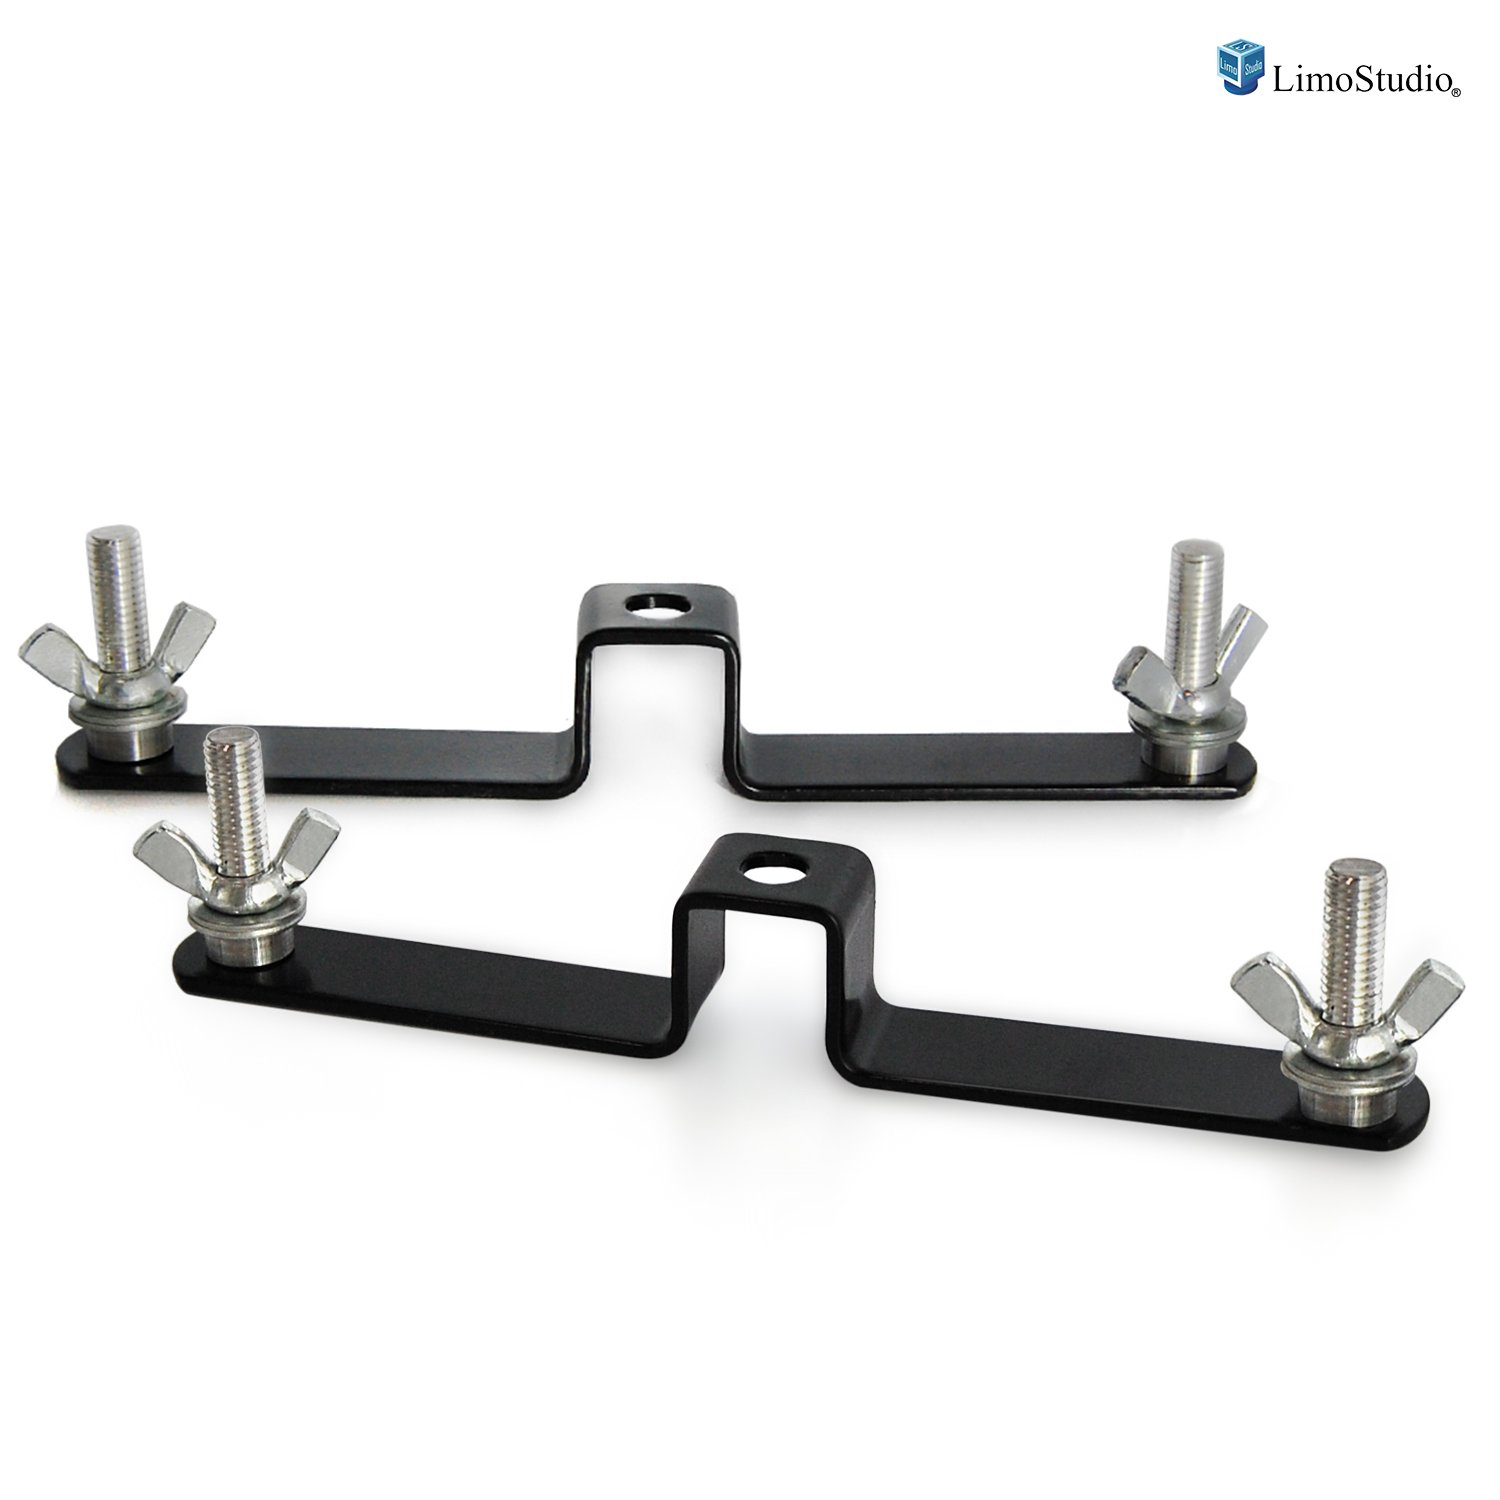 LimoStudio Photo Studio Backgdrop Support Cross Bar Mounting Hardware Set, AGG1258 by LimoStudio